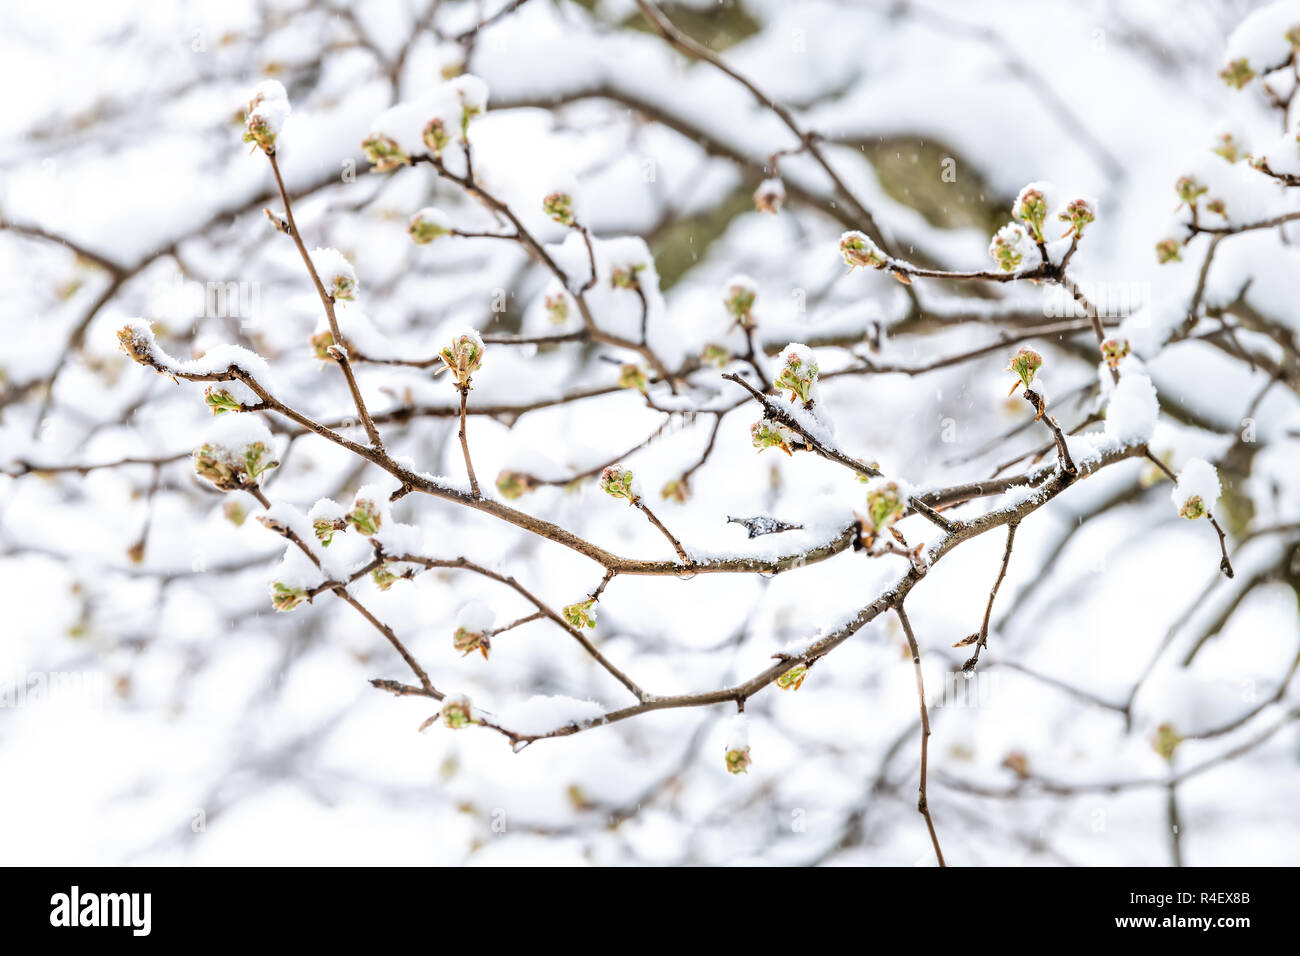 Closeup of sakura, cherry blossom tree buds on branches in spring, springtime covered in snow at snowstorm, storm, snowing, falling snowflakes against - Stock Image